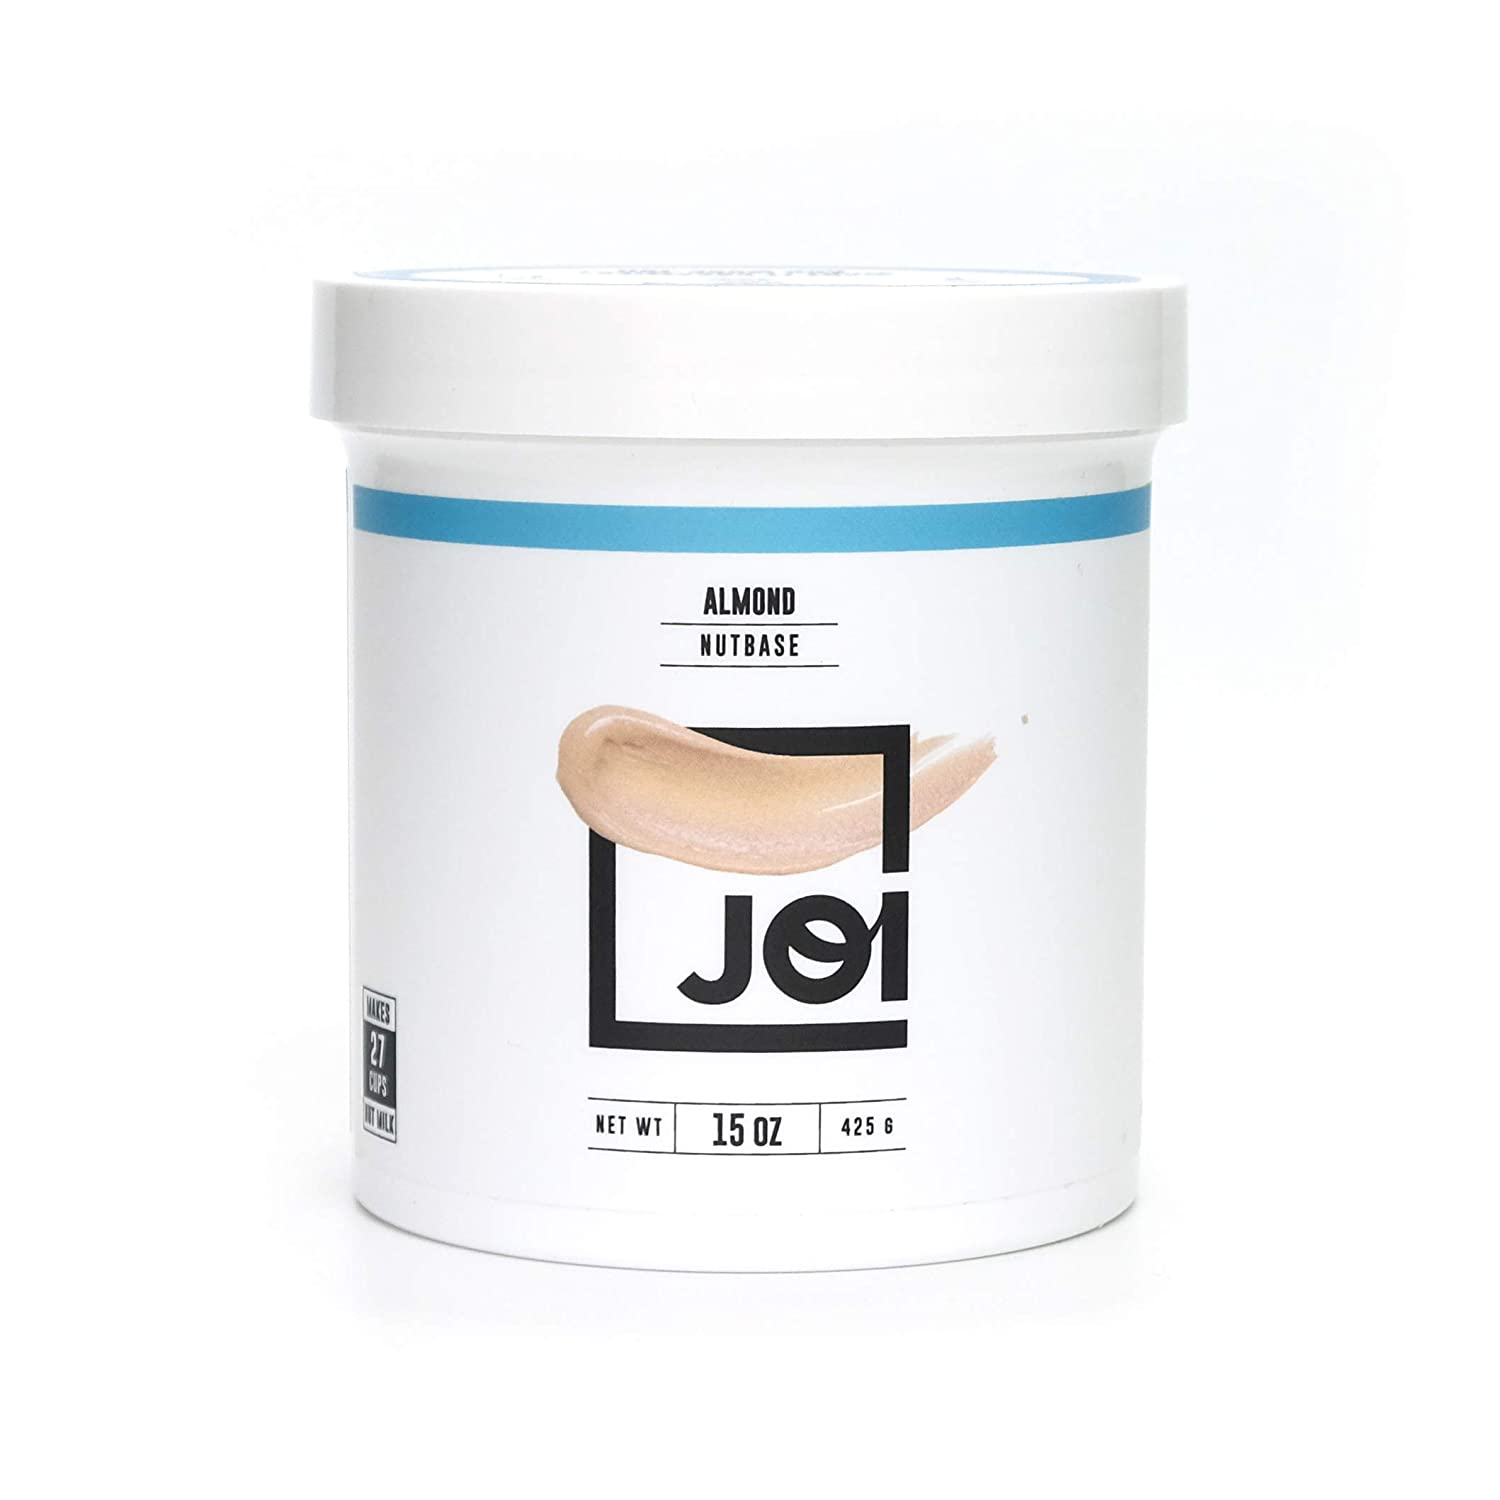 Almond Milk Concentrate by JOI | Make Your Own Fresh Almond Milk | Whole30 Approved; Just One Ingredient | Unsweetened without Gums or Emulsifiers | Vegan, Keto, Paleo Friendly | 15 oz. | Makes up to 7 Qts